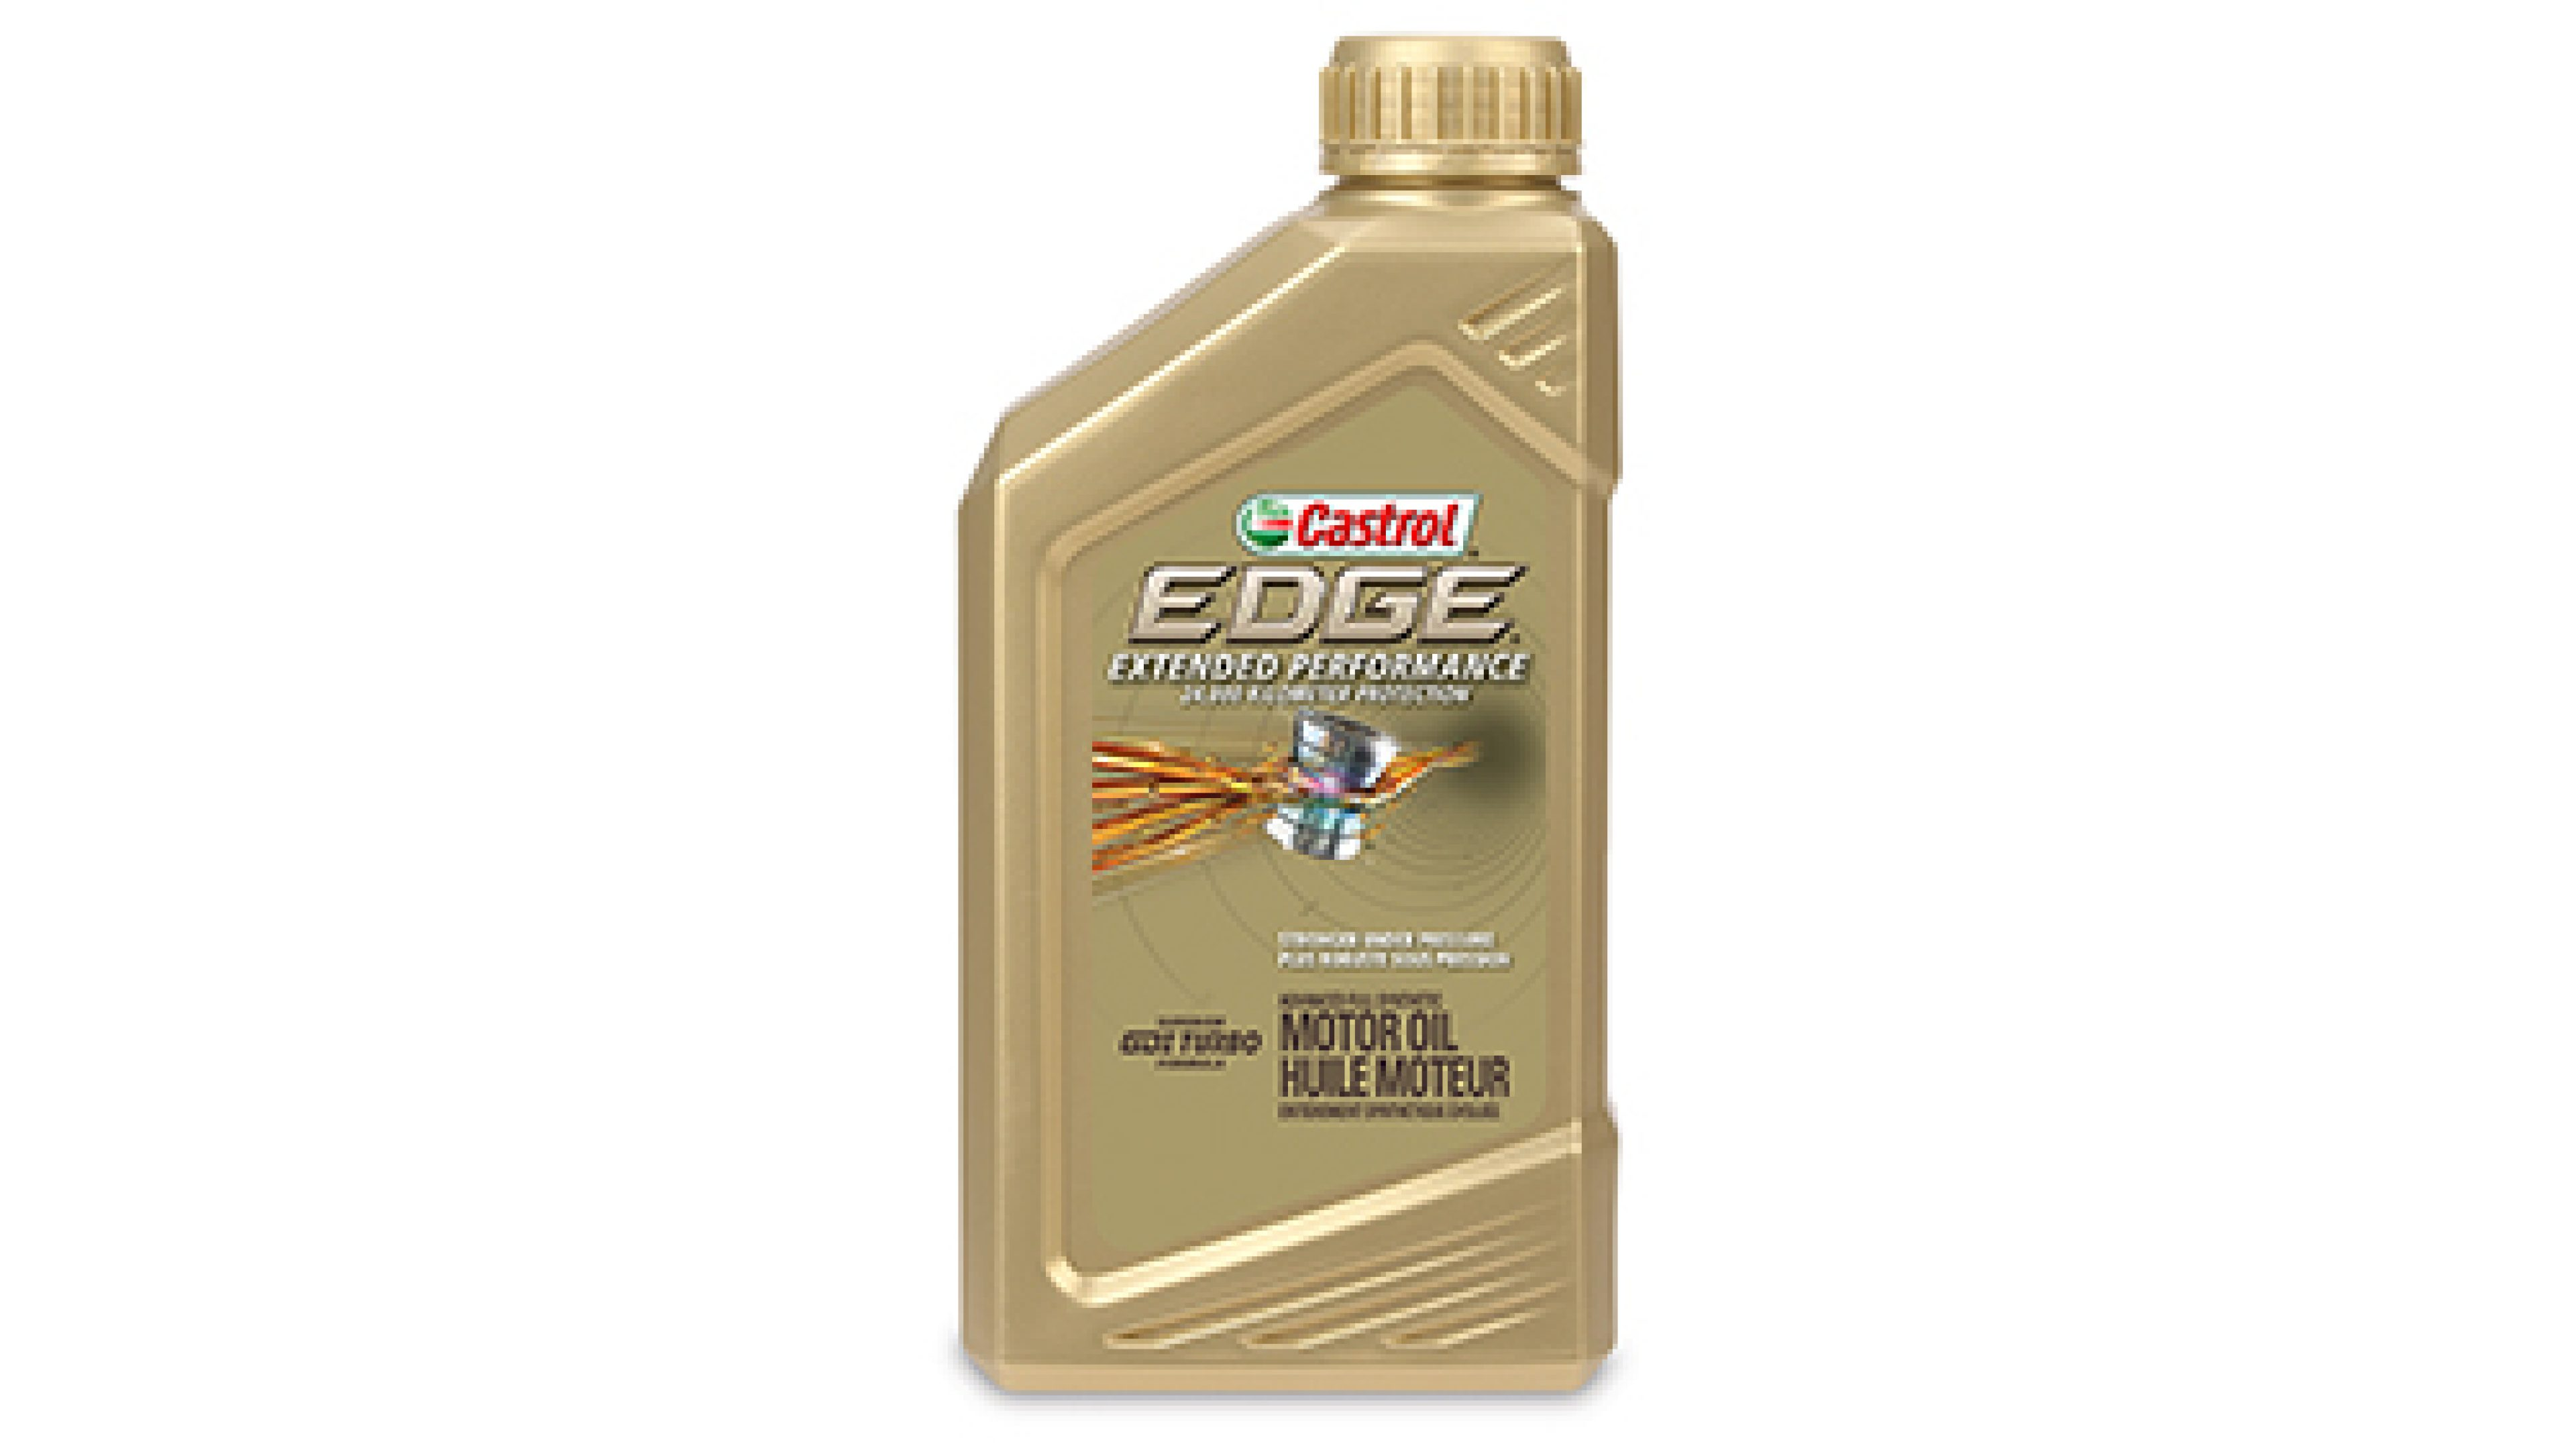 Castrol EDGE Extended Performance Motor Oil